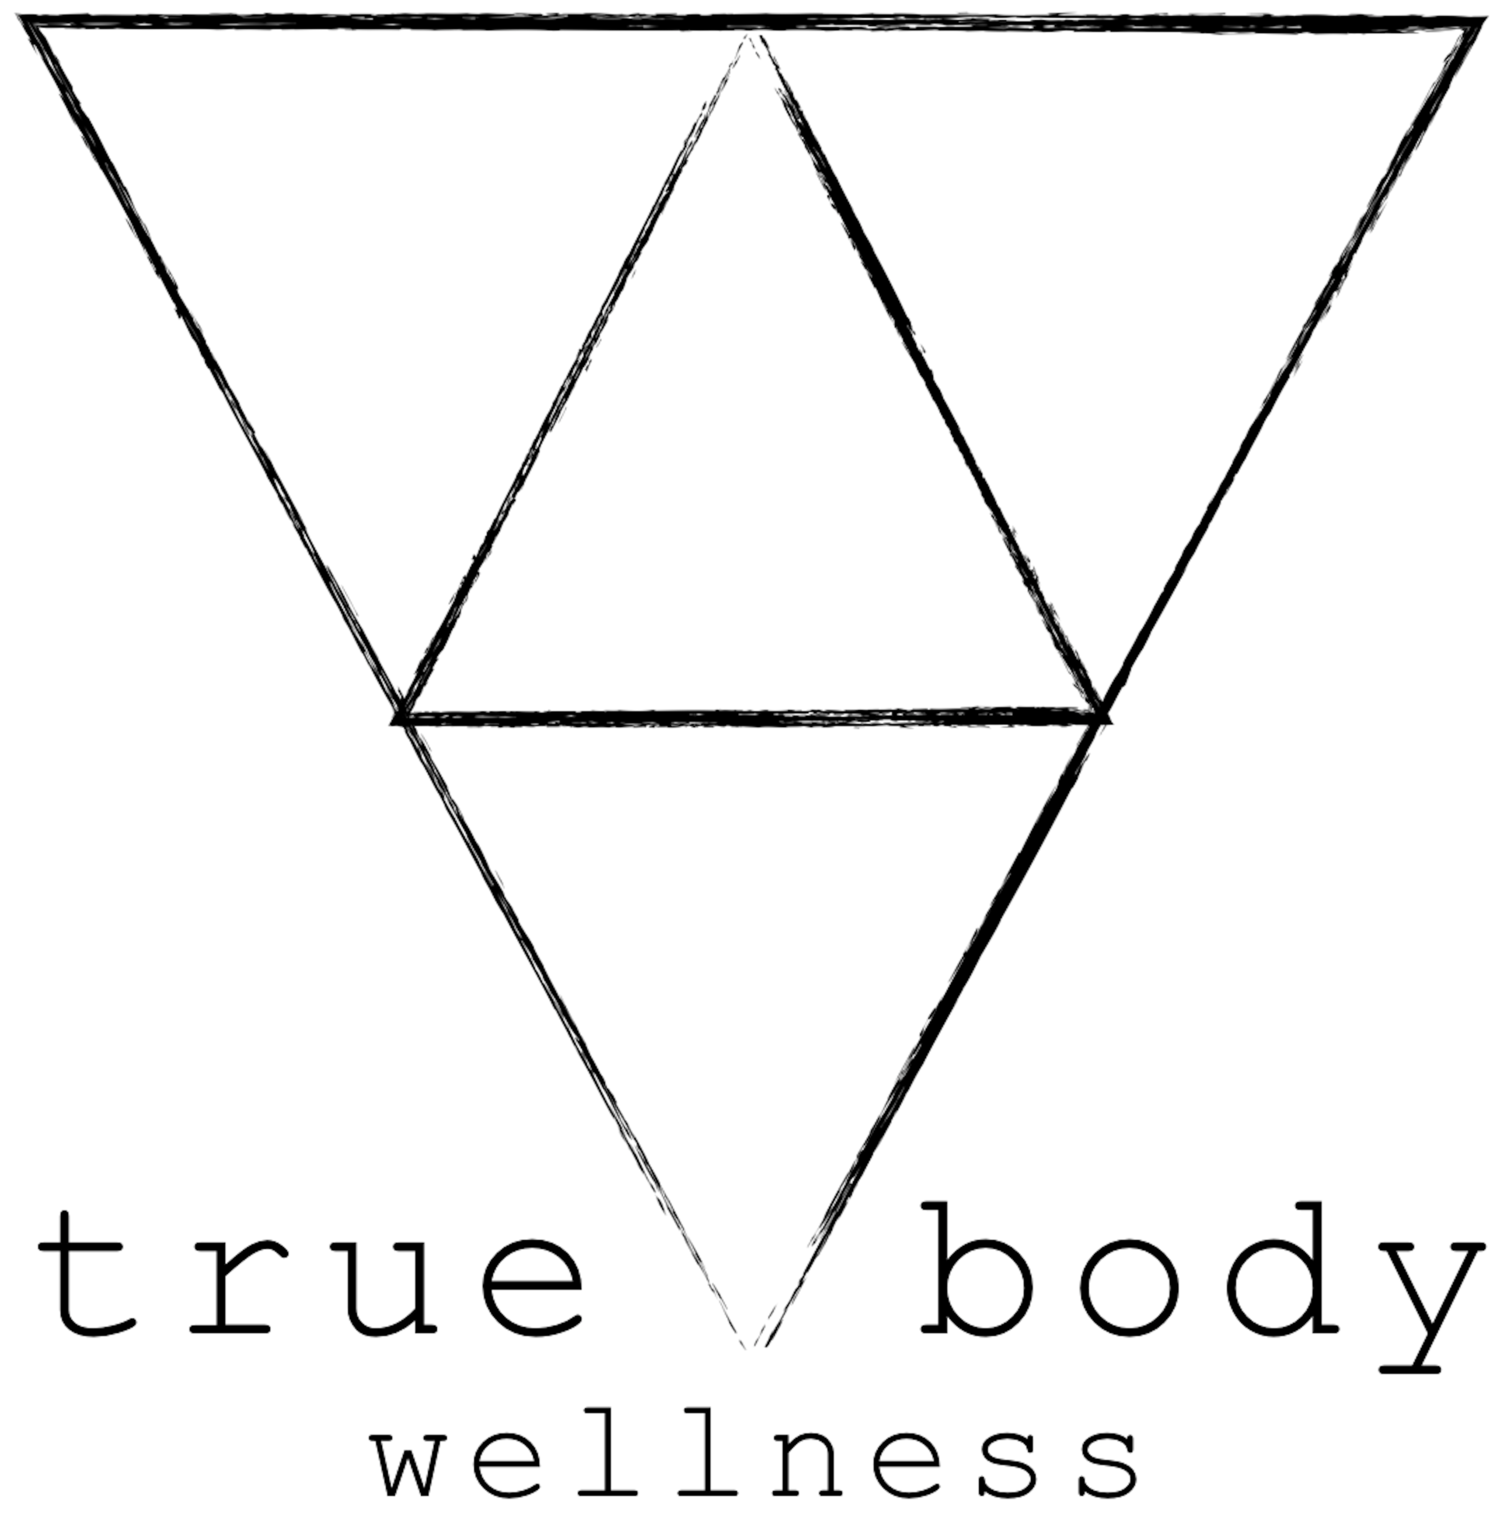 true body wellness